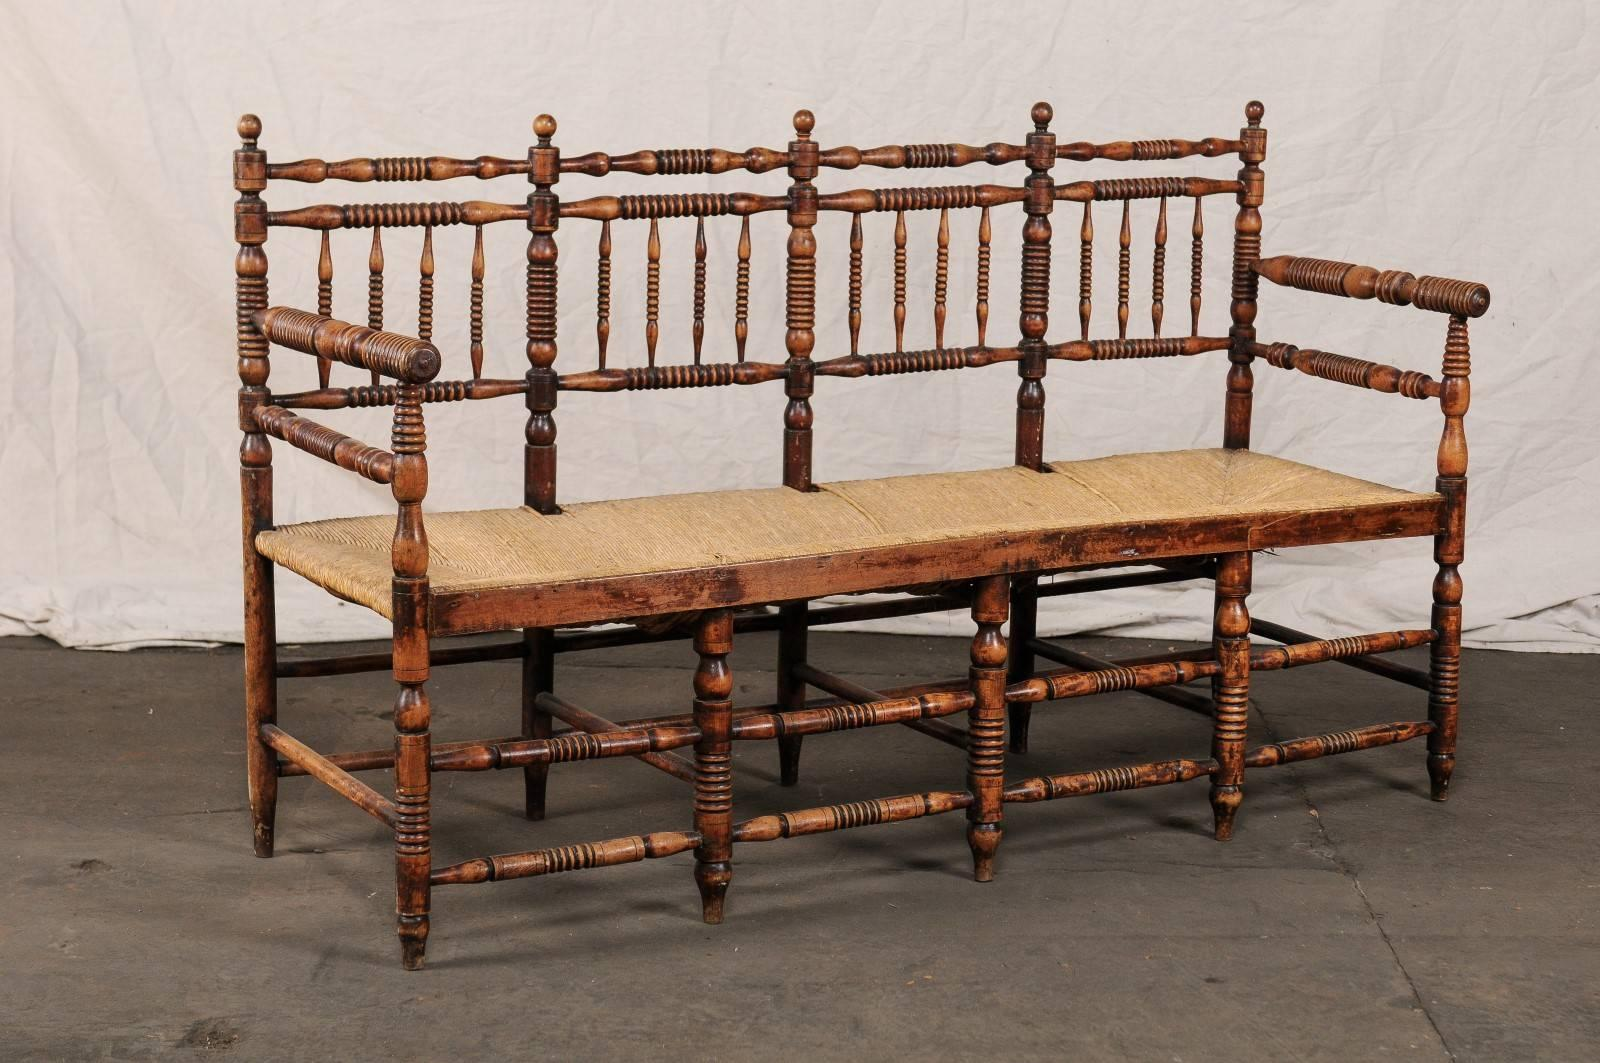 19th Century American Rustic Bench With Spindled Back And Woven Seat For  Sale 2